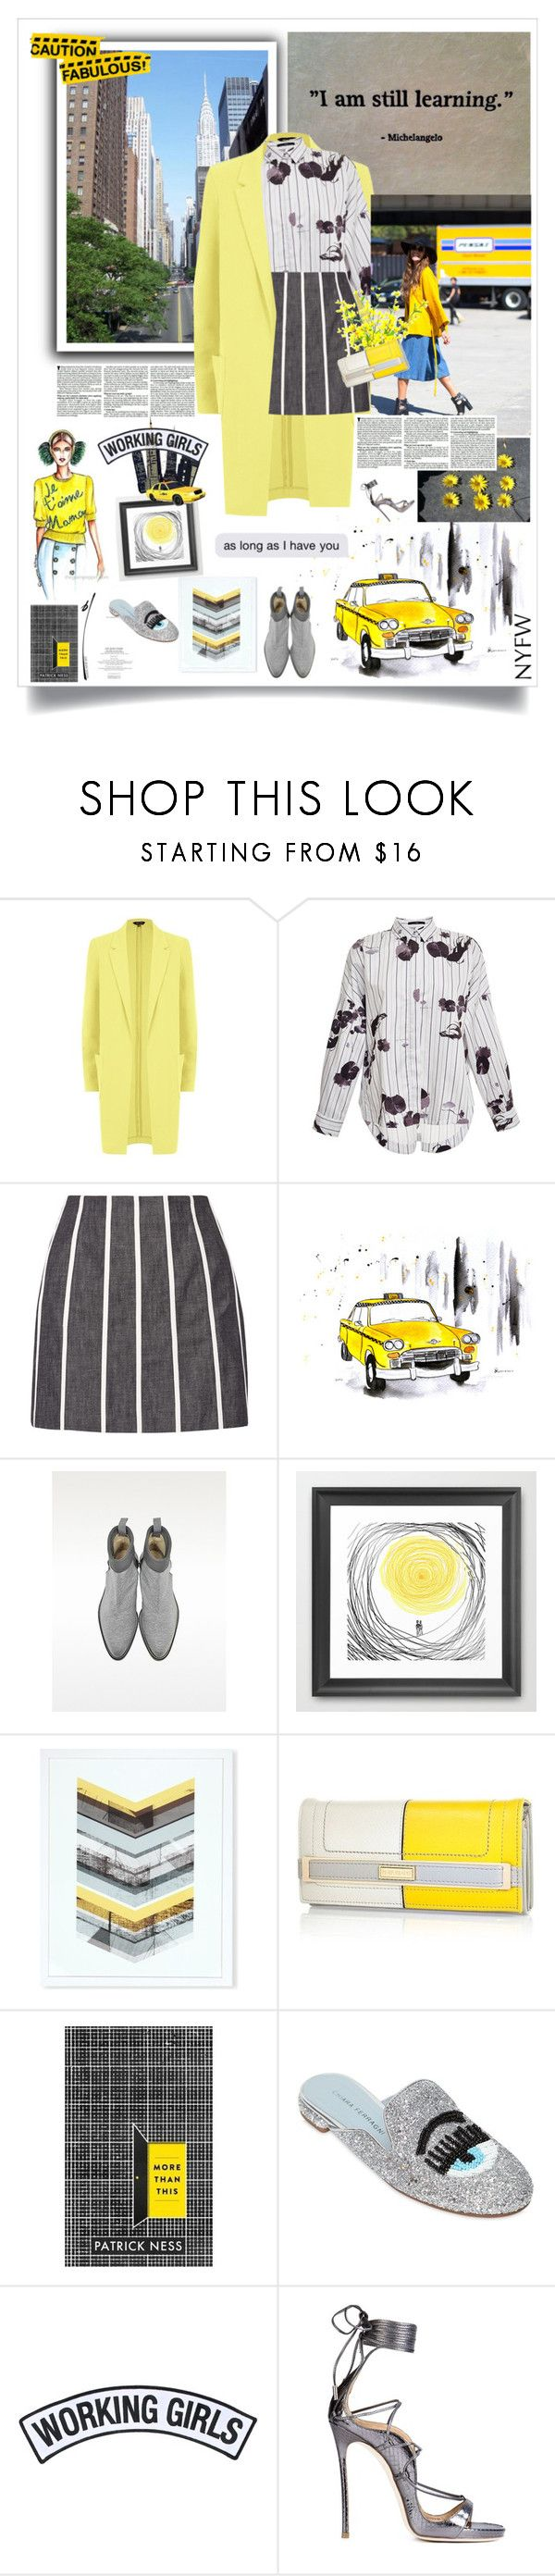 """""""boldness; nyfw"""" by lseed87 ❤ liked on Polyvore featuring TIBI, dVb Victoria Beckham, TAXI, Zoe Lee, East End Prints, River Island, Chiara Ferragni, Working Girls, Dsquared2 and NYFW"""